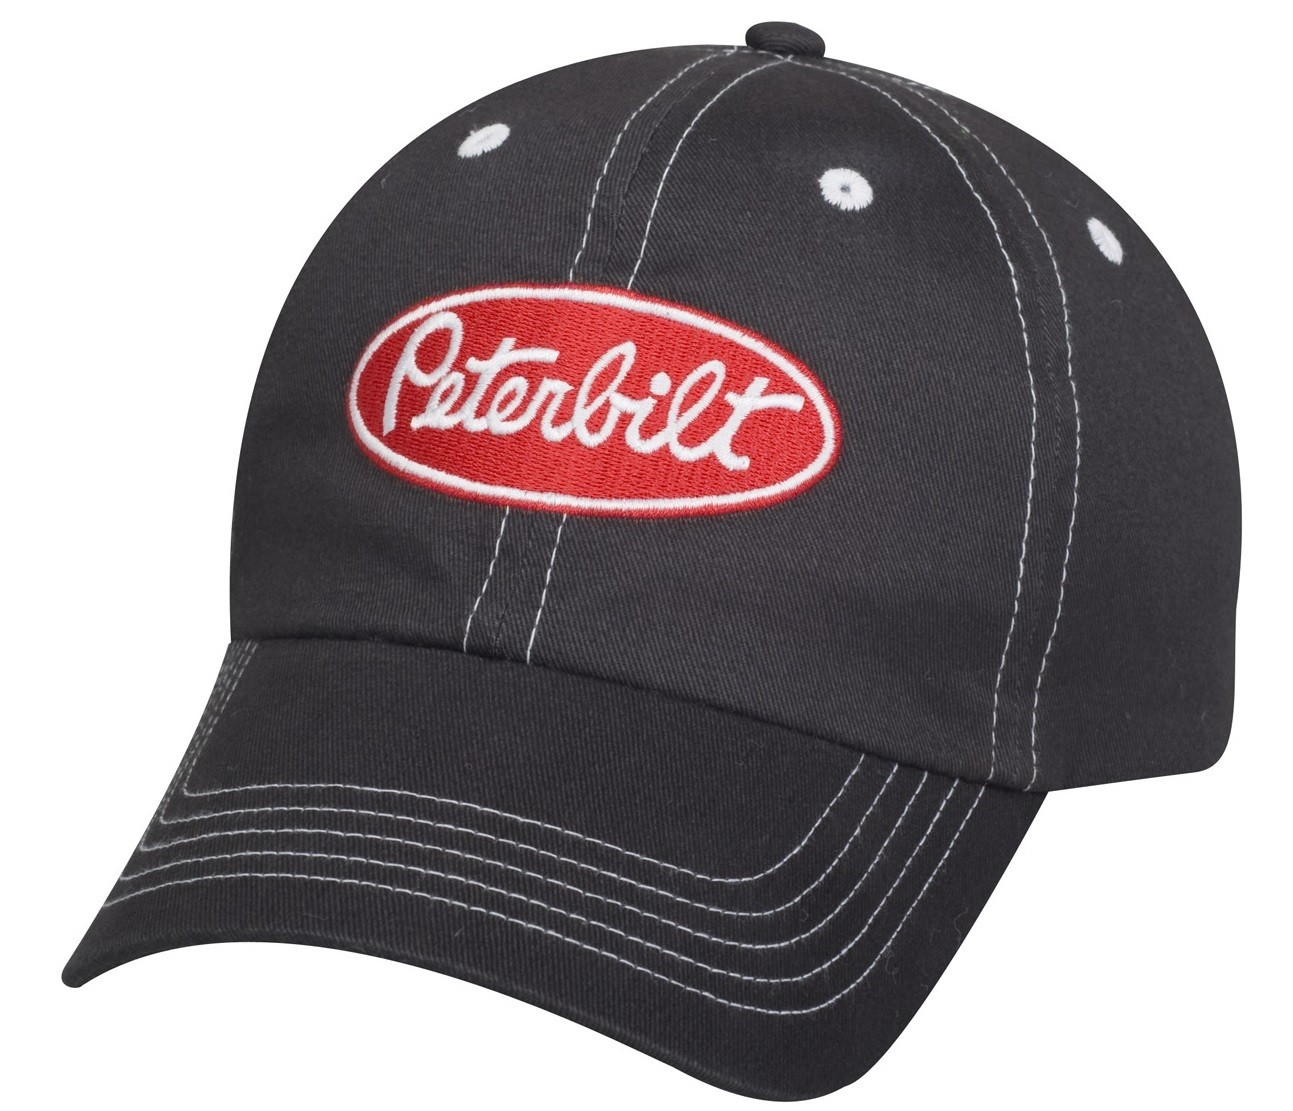 Peterbilt Value Unstructured Twill Cap